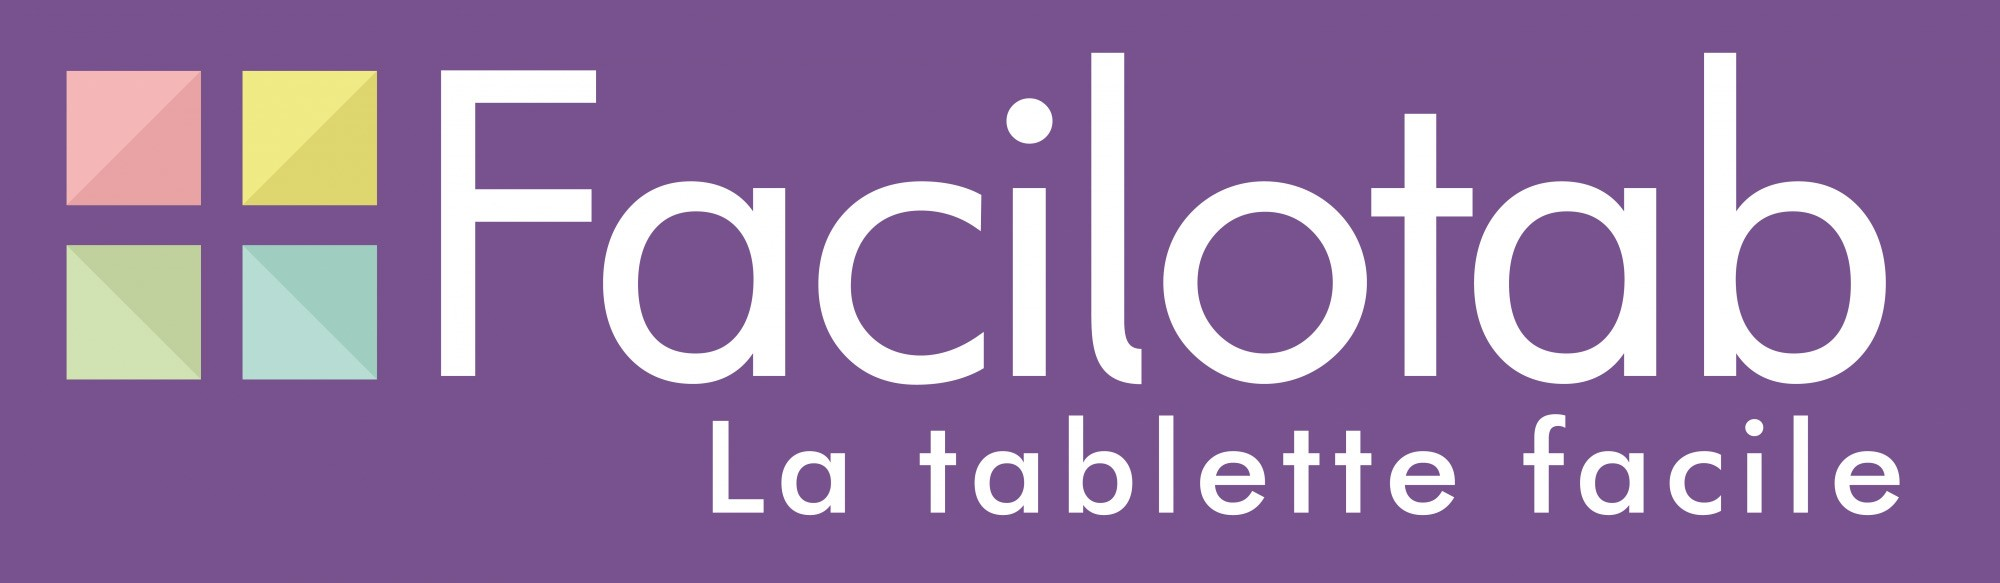 Facilotab - ALCATEL